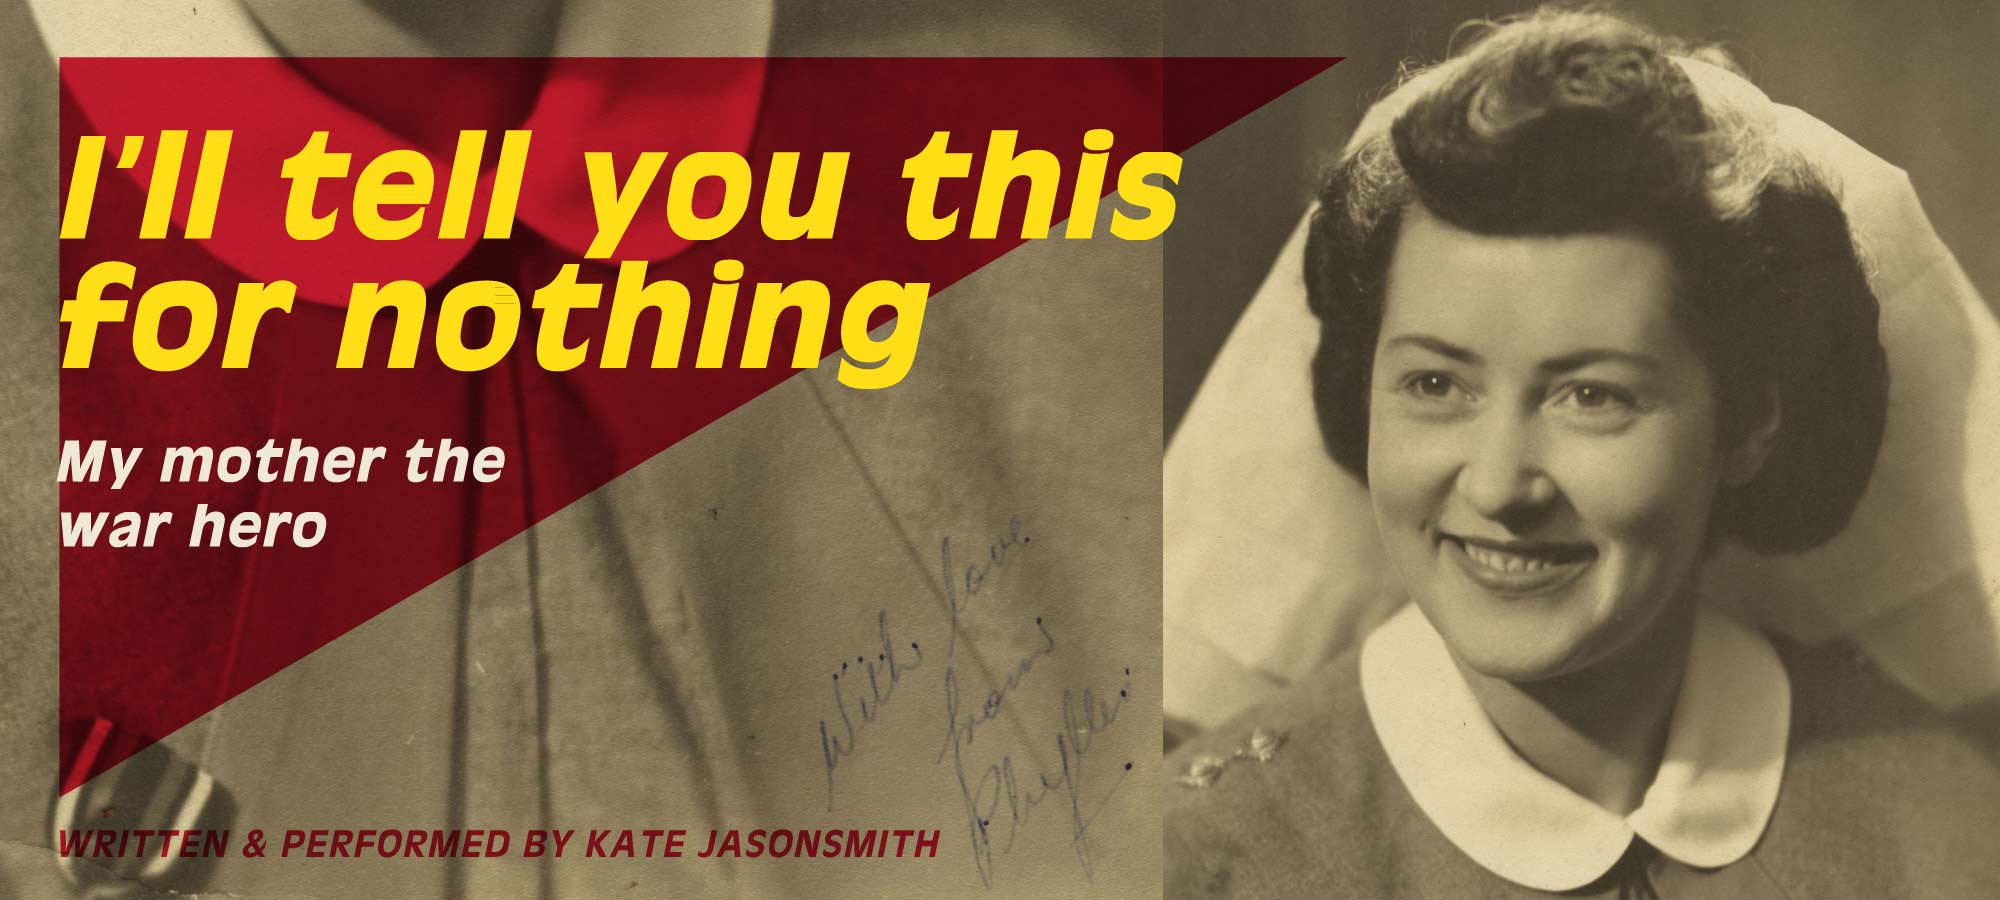 I'll tell you this for nothing My Mother the war hero written and performed by Kate JasonSmith